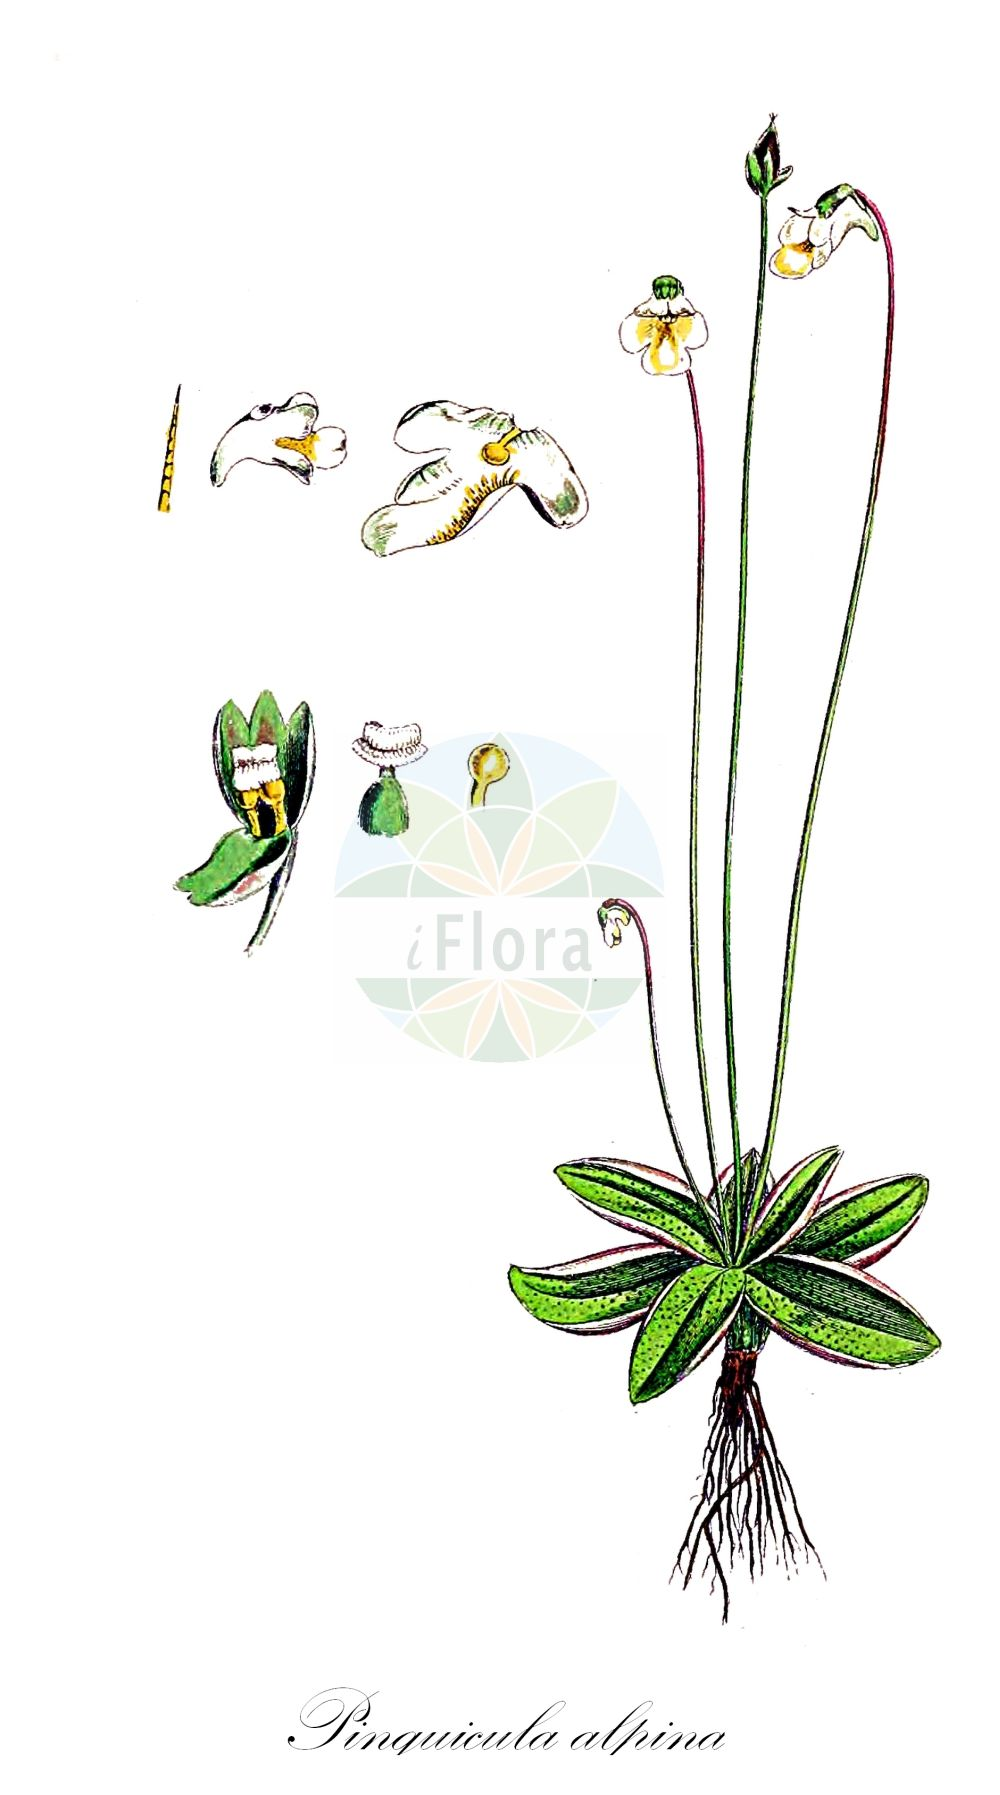 Historische Abbildung von Pinguicula alpina (Alpen-Fettkraut - Alpine Butterwort). Das Bild zeigt Blatt, Bluete, Frucht und Same. ---- Historical Drawing of Pinguicula alpina (Alpen-Fettkraut - Alpine Butterwort).The image is showing leaf, flower, fruit and seed.(Pinguicula alpina,Alpen-Fettkraut,Alpine Butterwort,subsp. gavei,Pinguicula,Fettkraut,Butterwort,Lentibulariaceae,Wasserschlauchgewaechse,Bladderwort family,Blatt,Bluete,Frucht,Same,leaf,flower,fruit,seed,Sowerby (1790-1813))